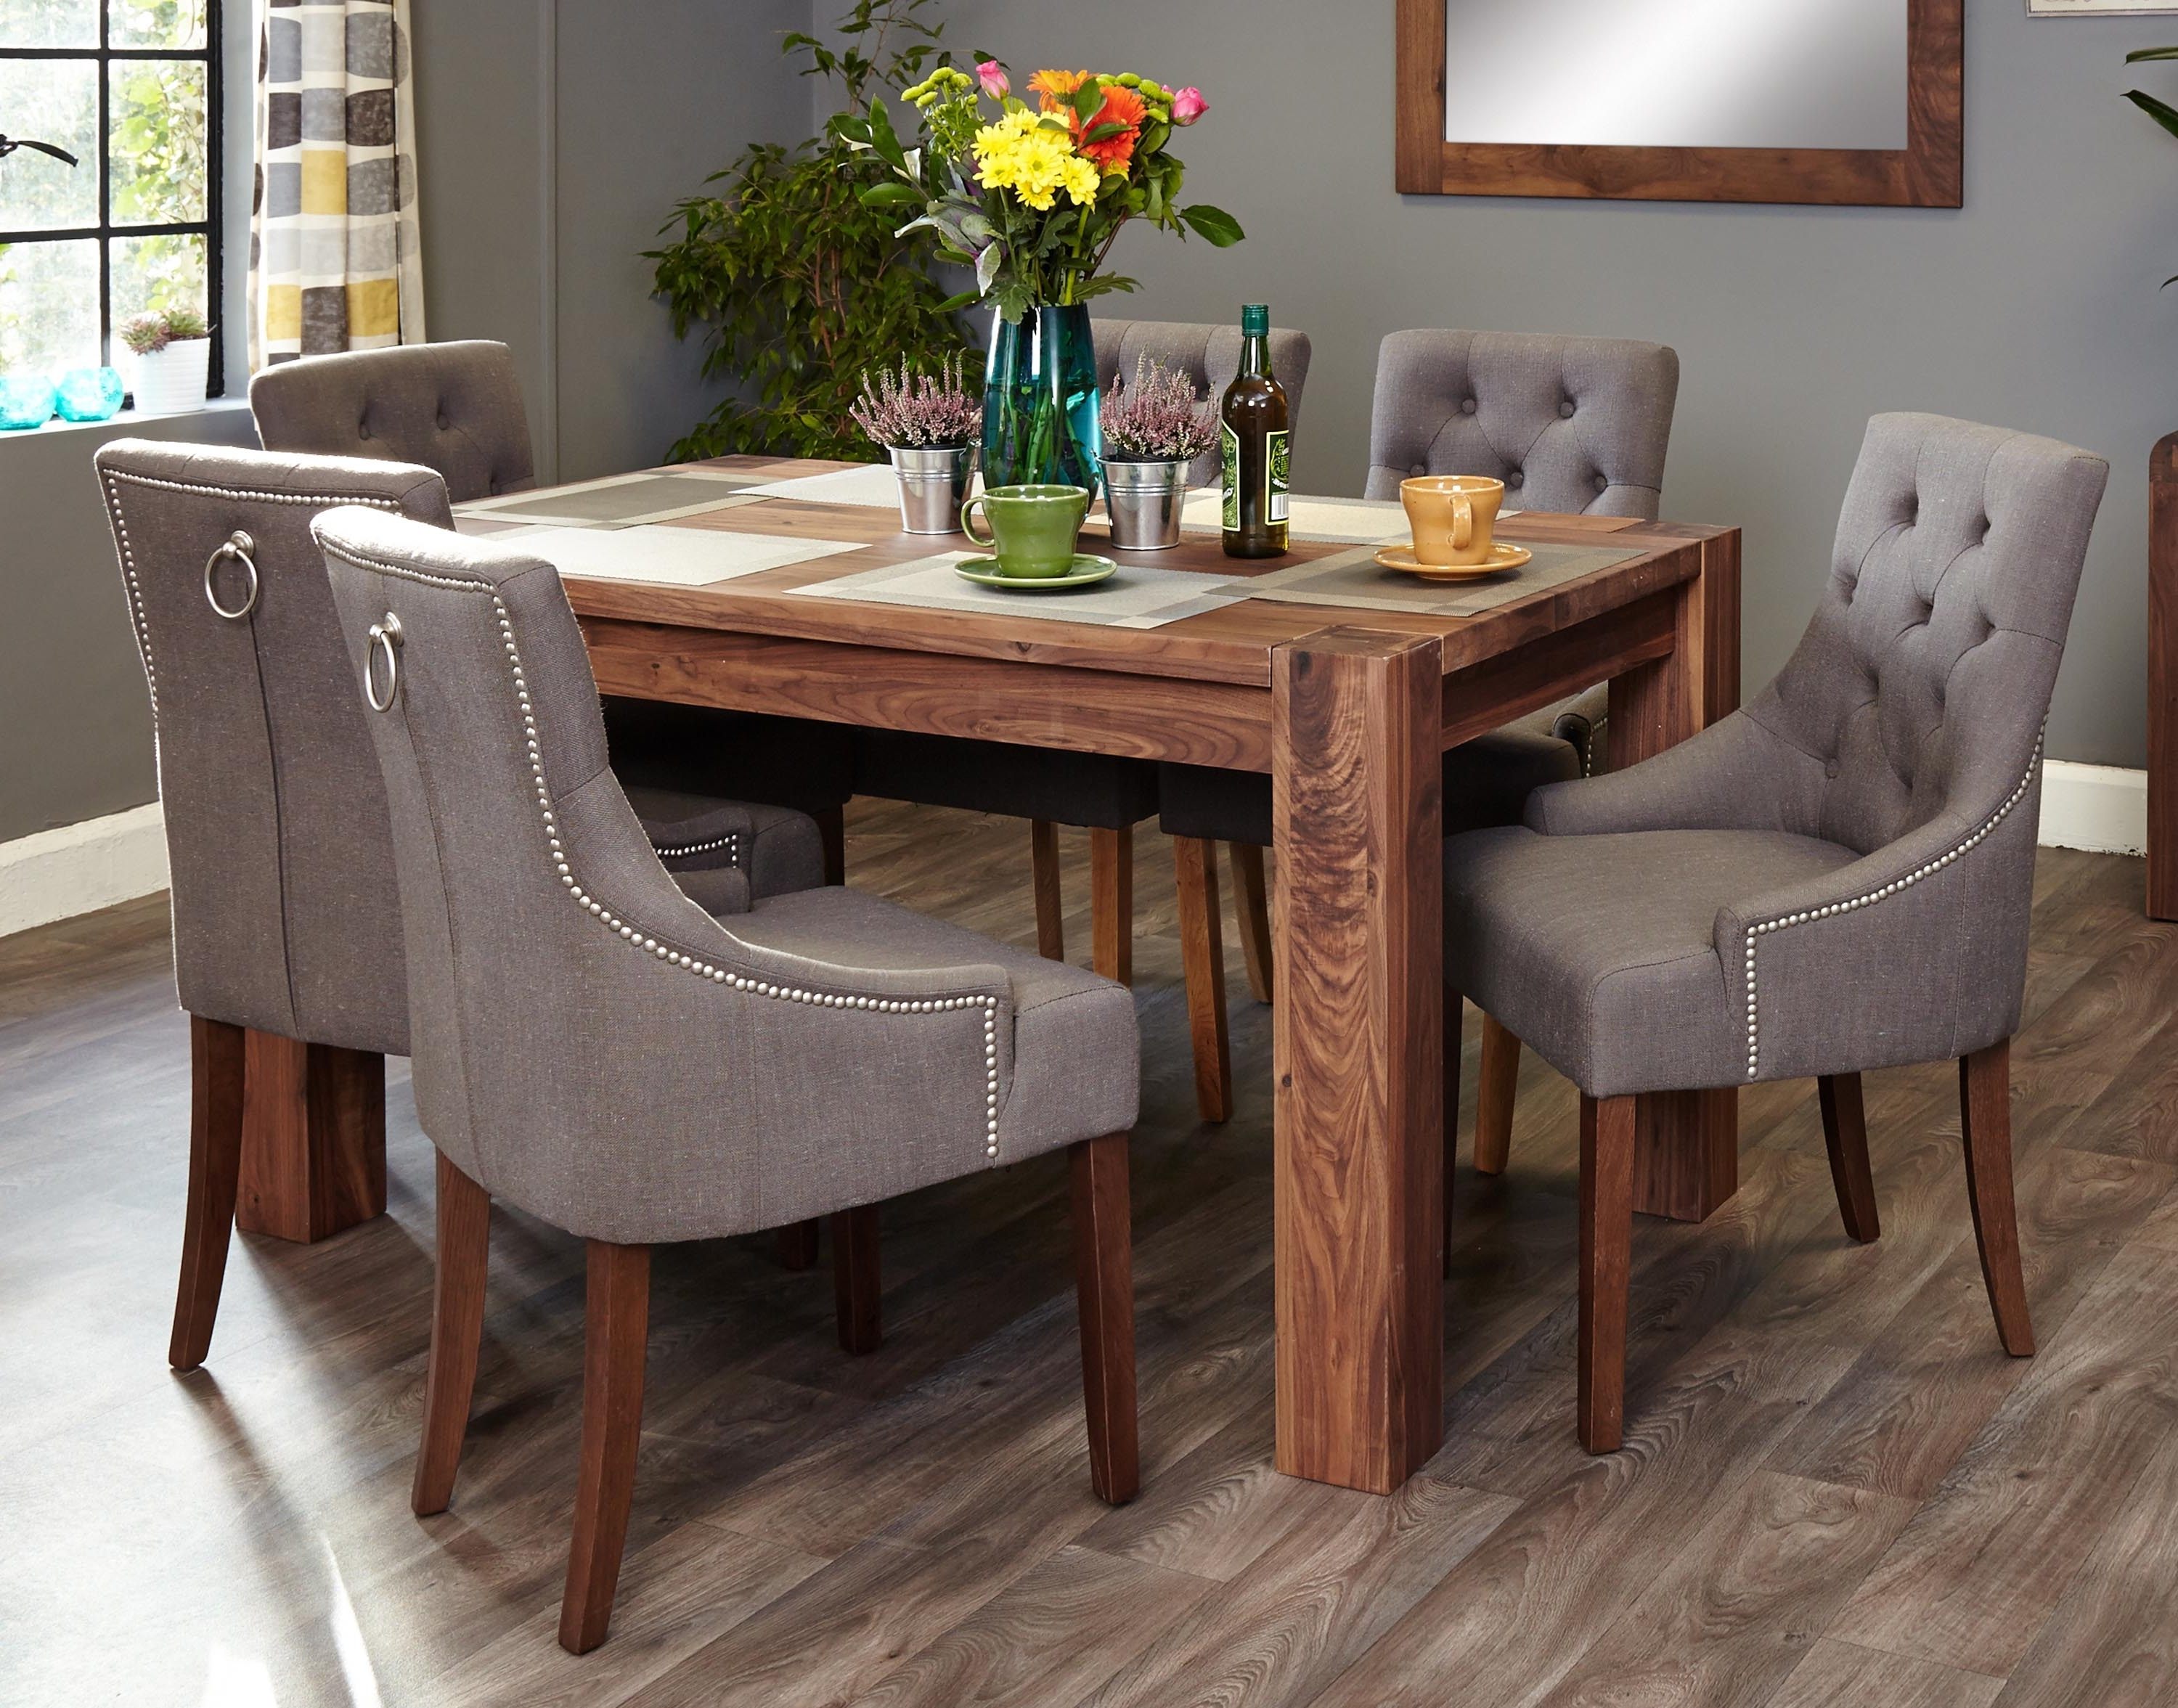 Shiro Walnut 6 Seater Dining Table Set (Accent) (Socdr04B Cdr03F) Inside Current 6 Seater Dining Tables (View 23 of 25)